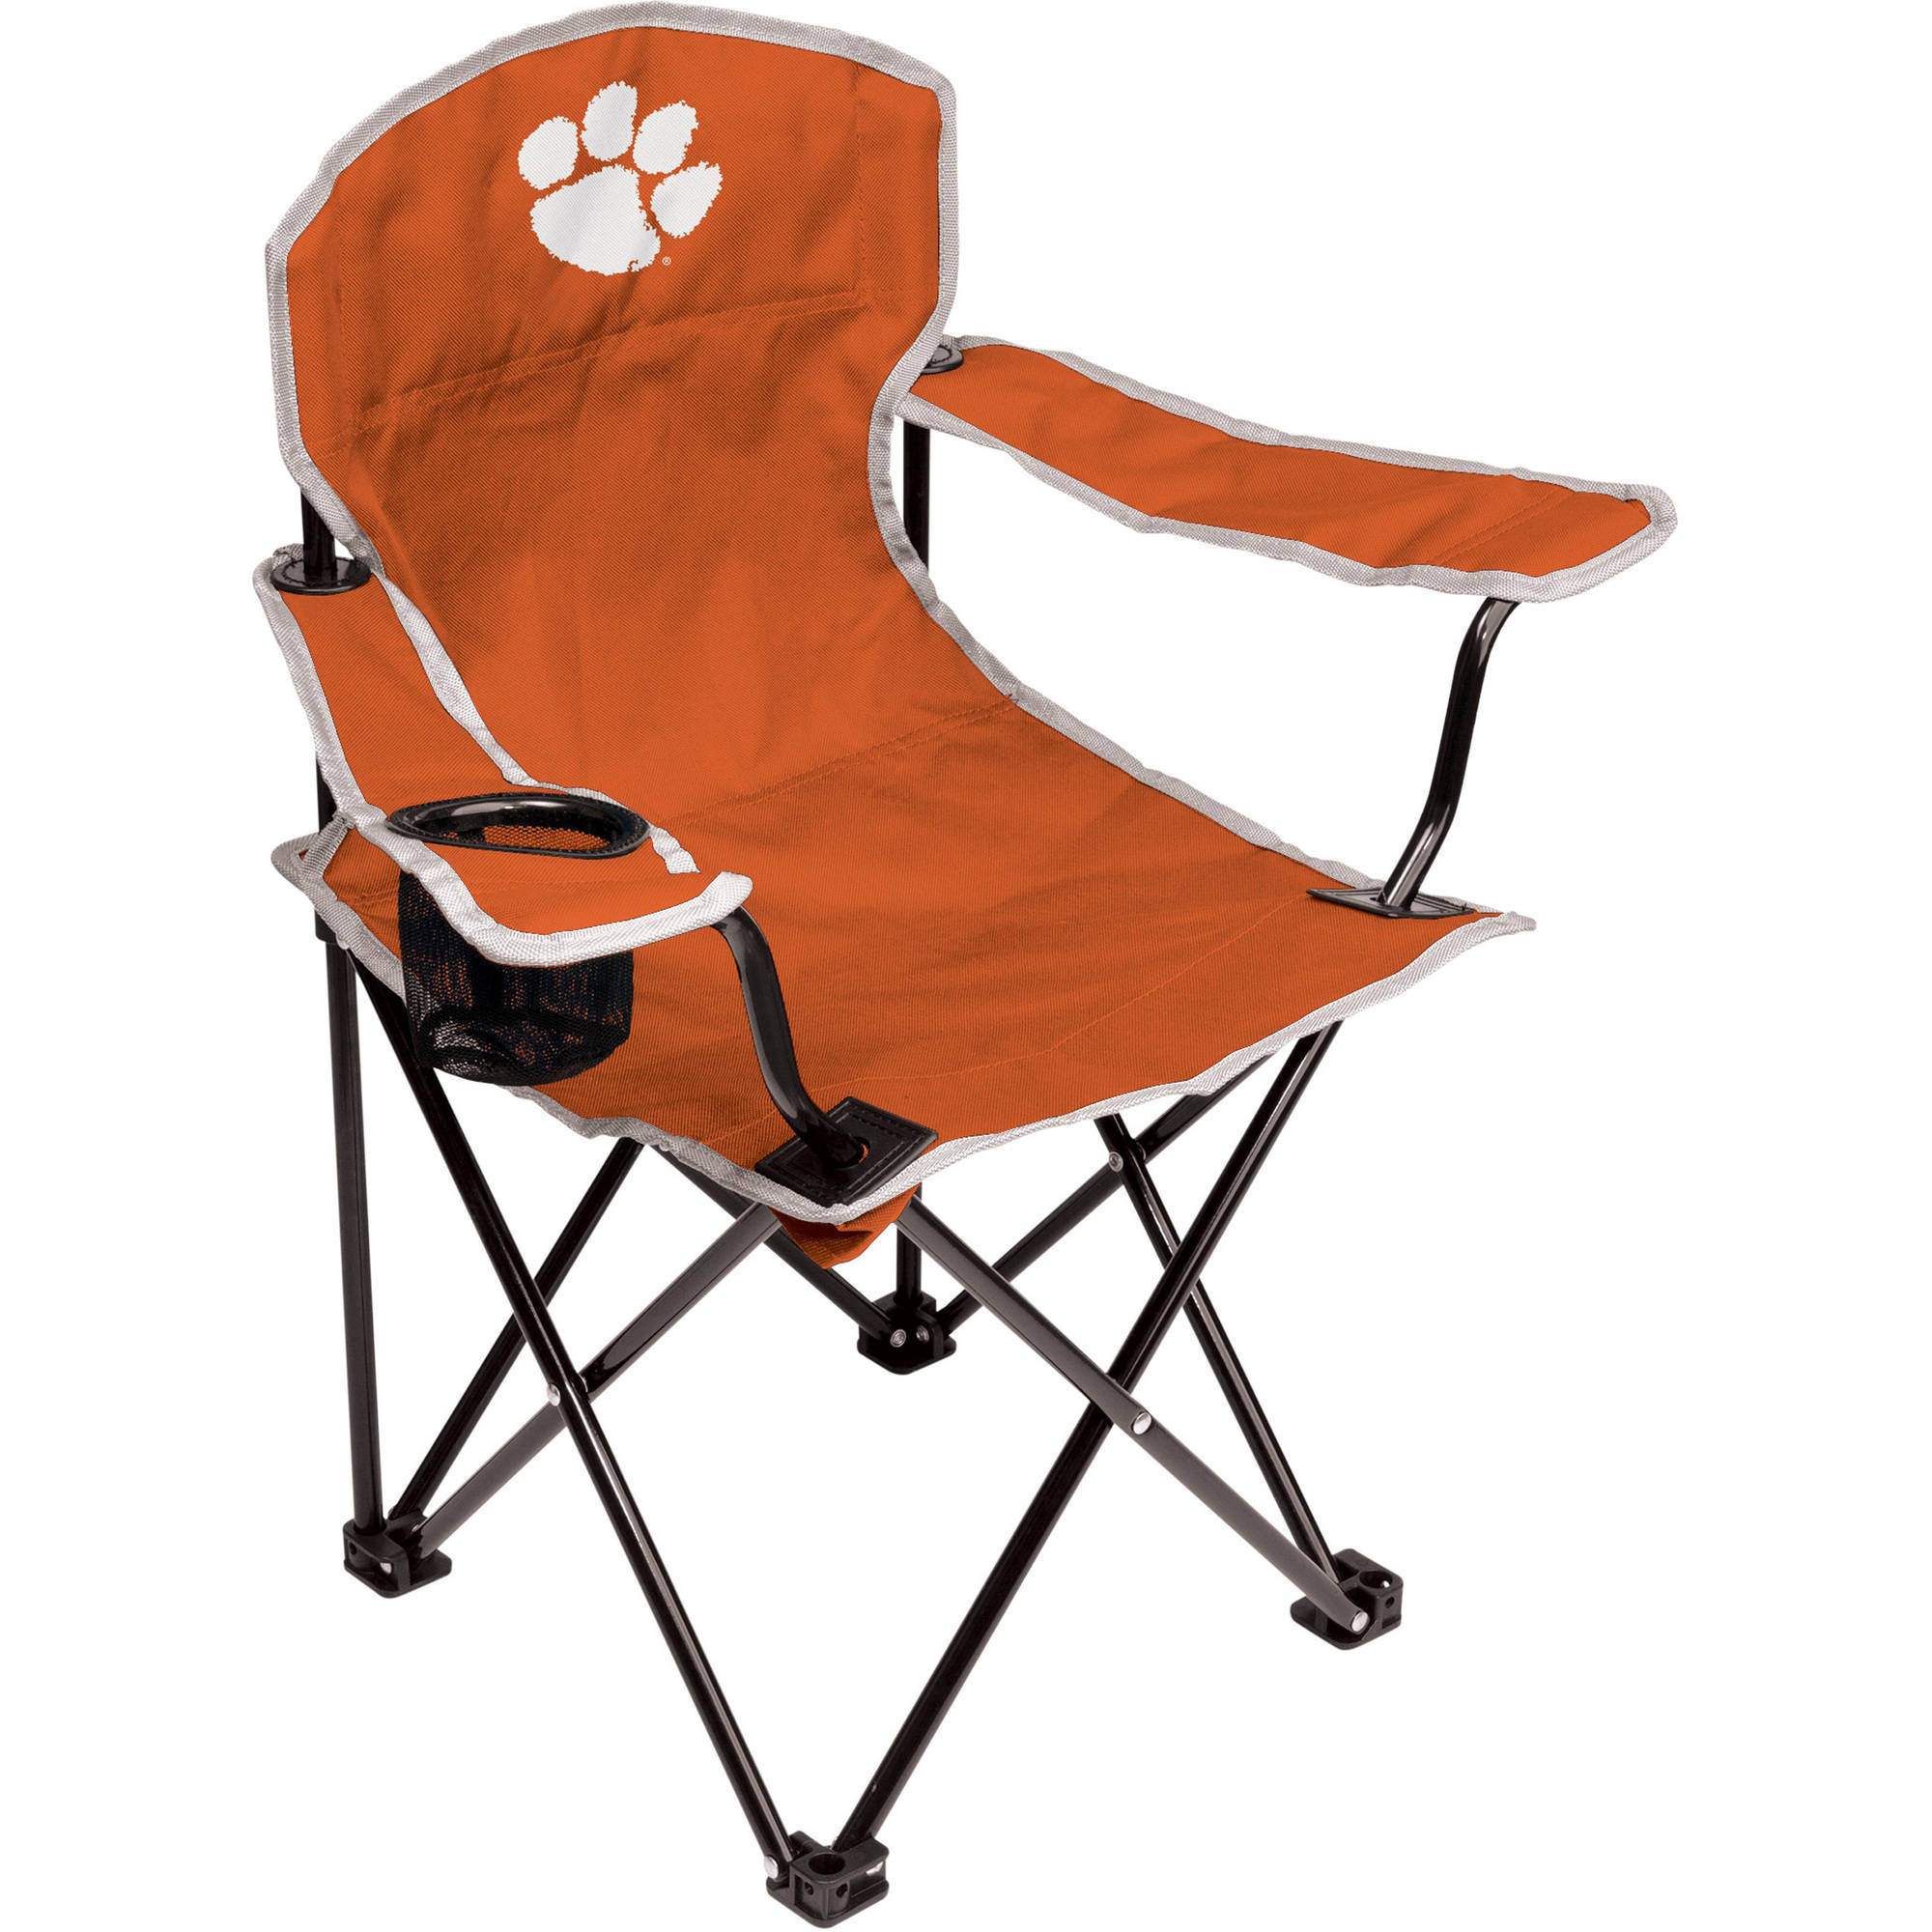 NCAA Clemson Tigers Youth Size Tailgate Chair from Coleman by Rawlings